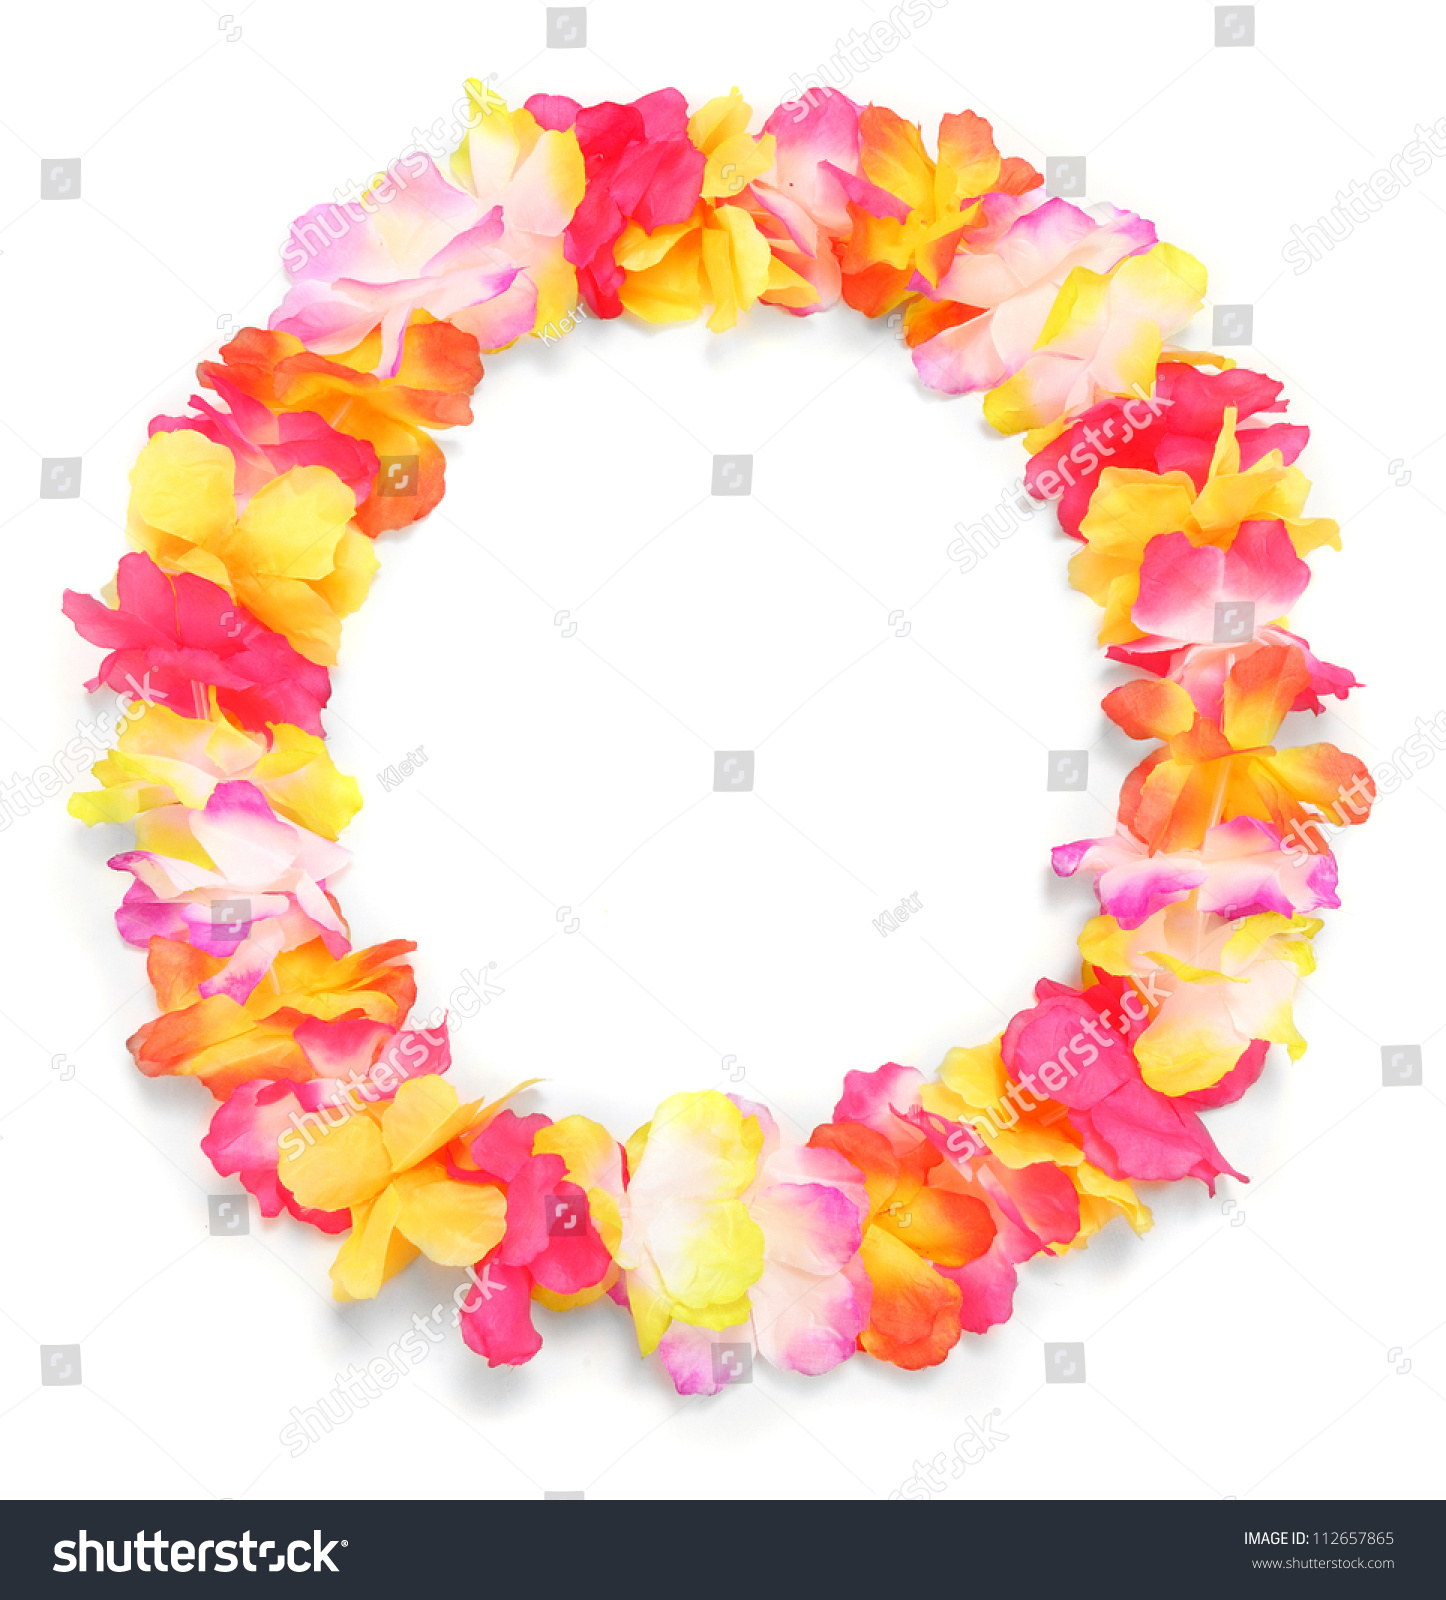 party leis hawaiian flower dress garland necklace beach flowers fun fancy diy item hawaii